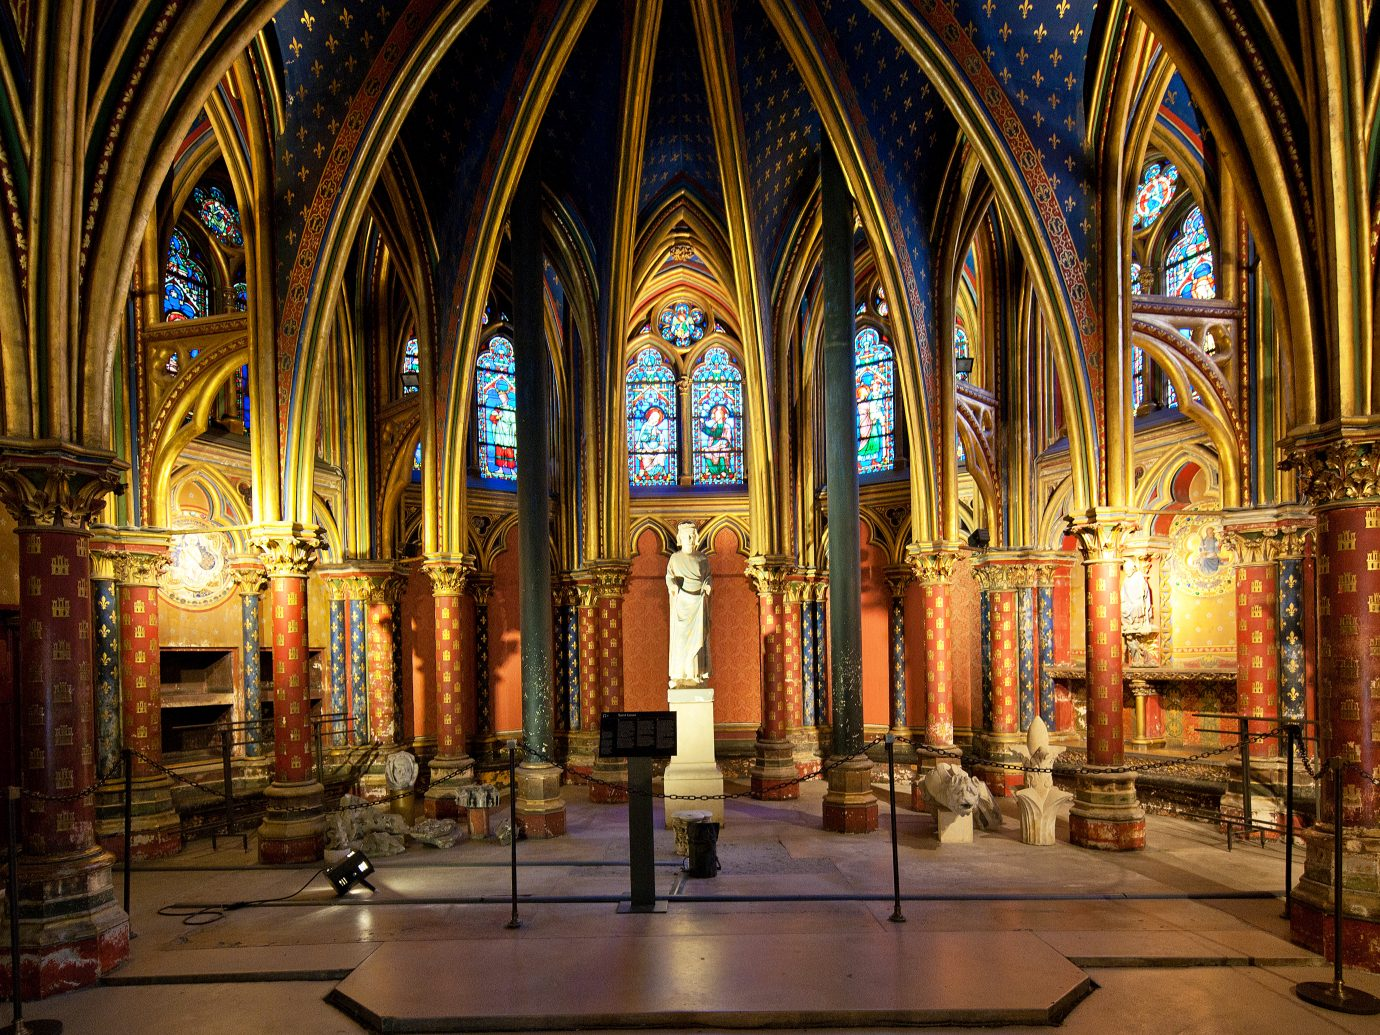 The Sainte-Chapelle is a royal medieval Gothic chapel in Paris, France.